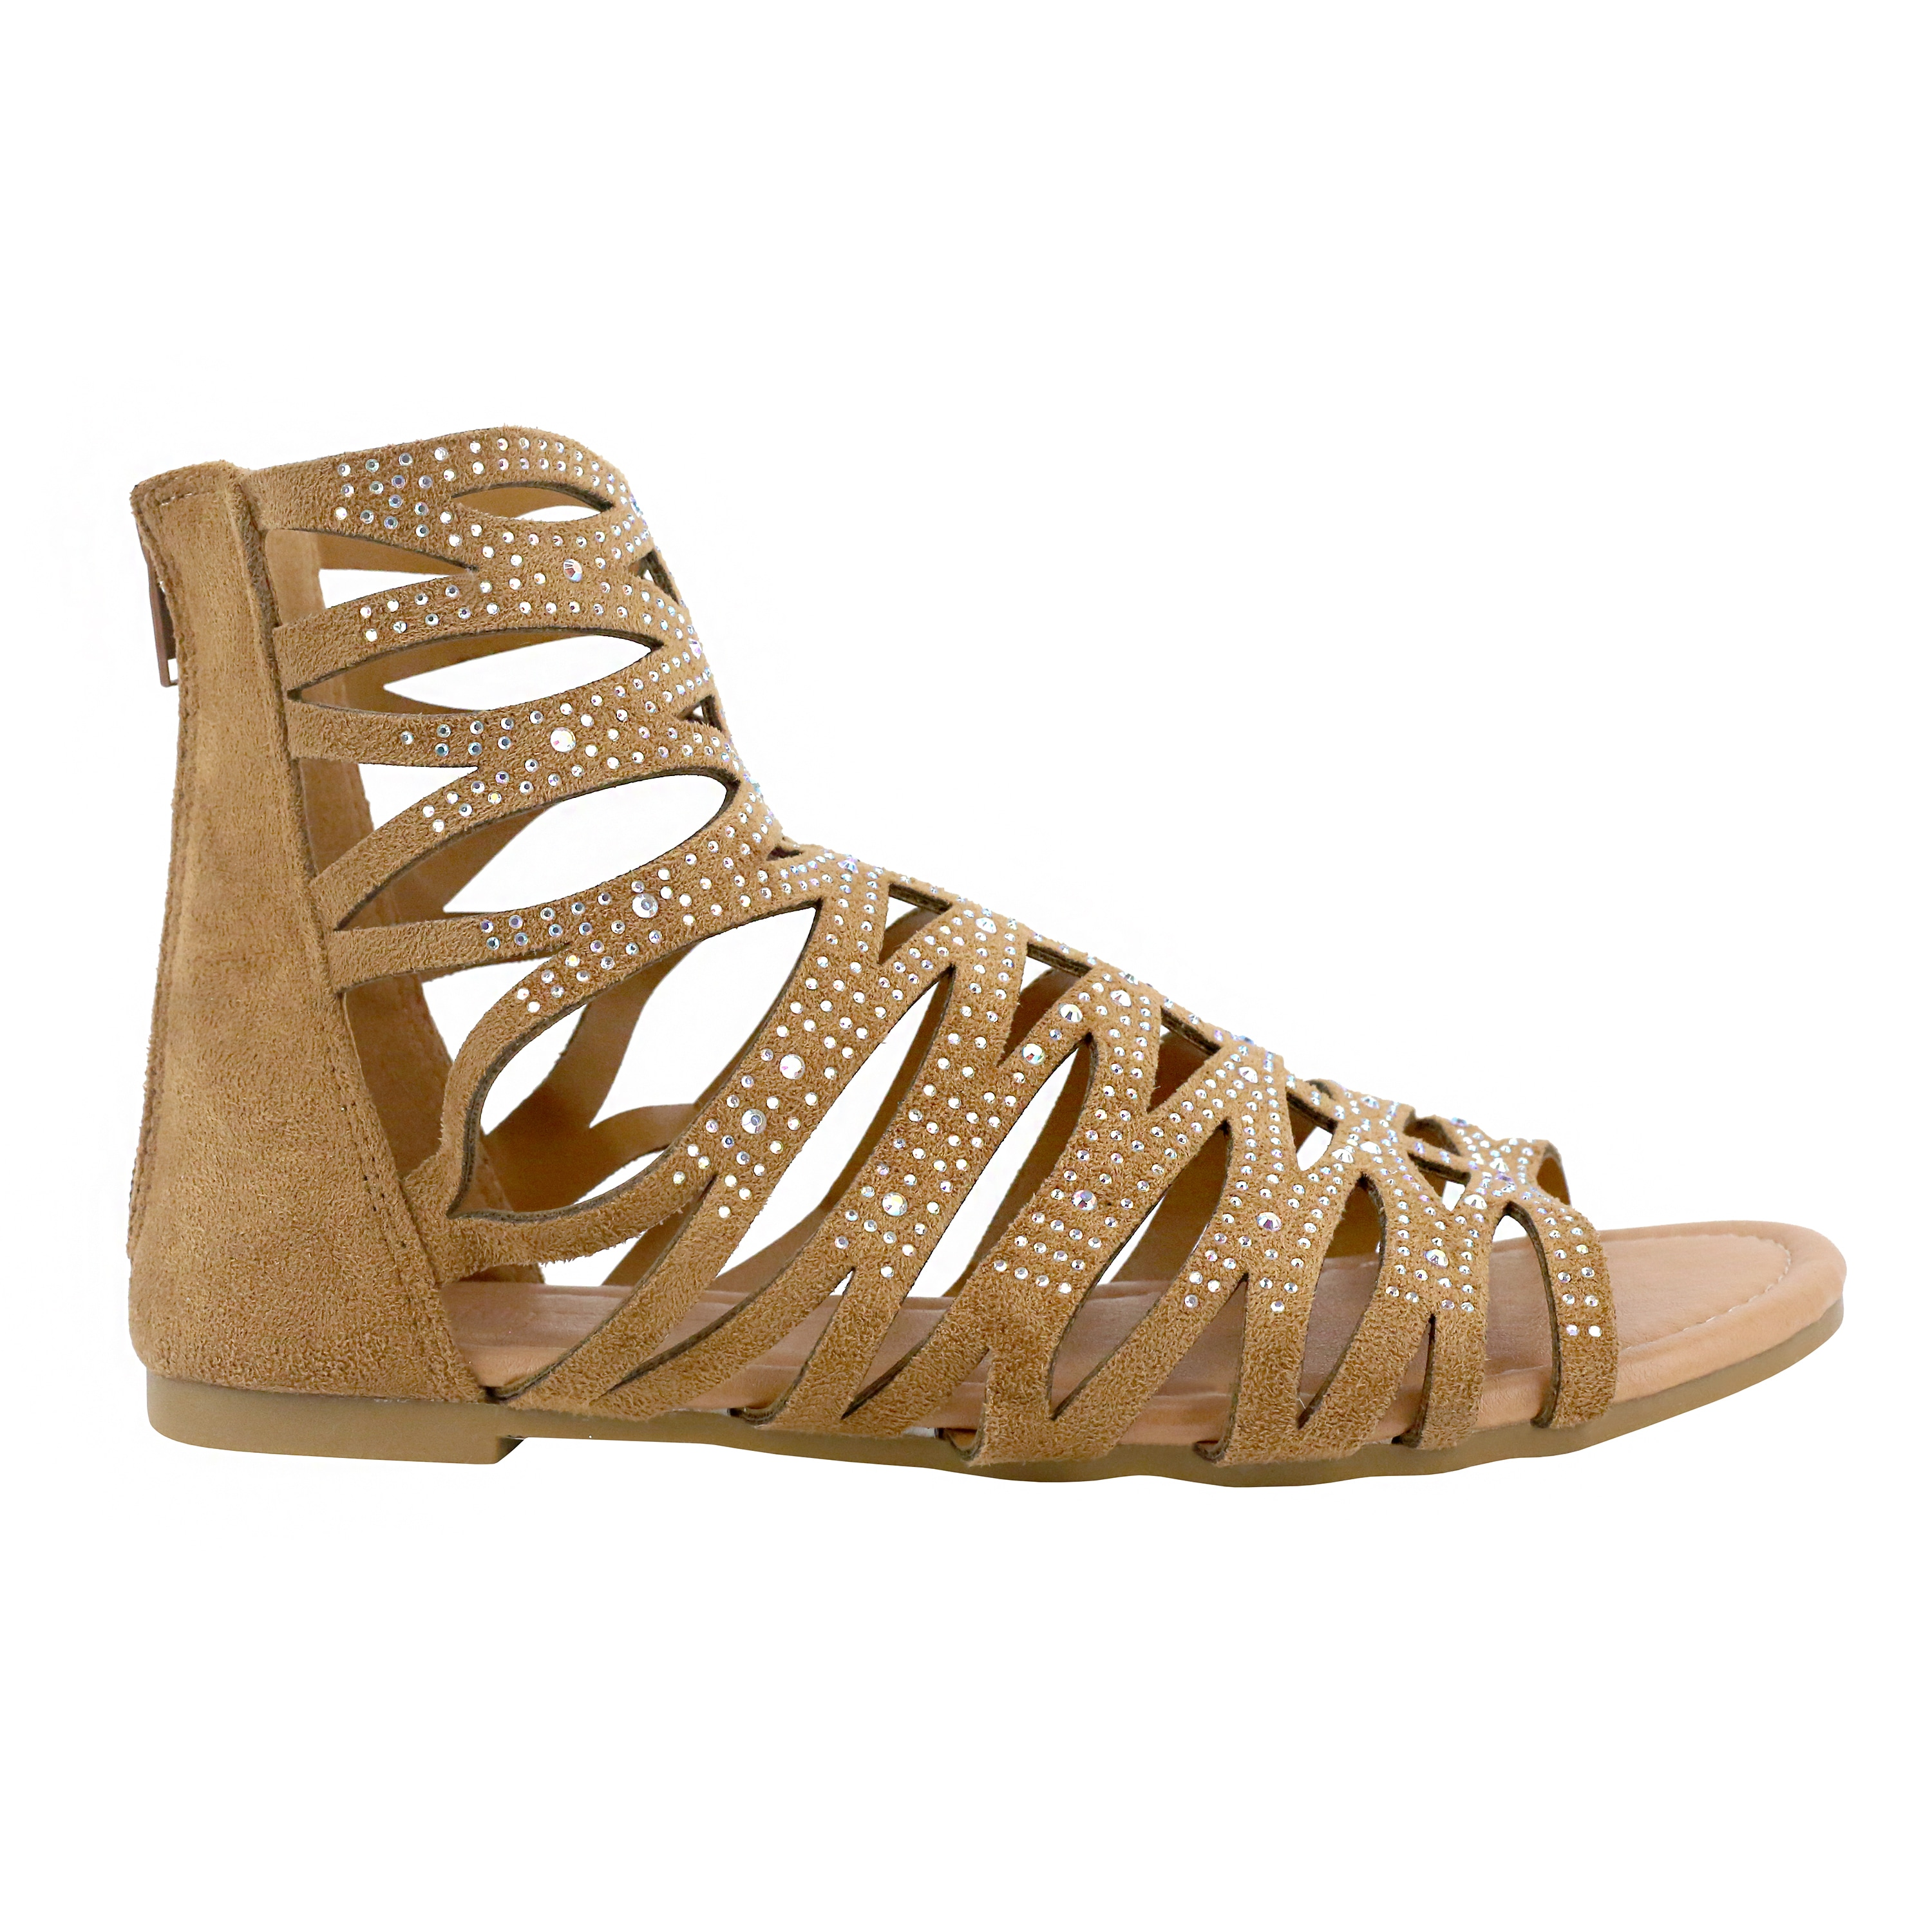 Olivia Miller Leela Women's ... Gladiator Sandals clearance online amazon UrBYxY9aW